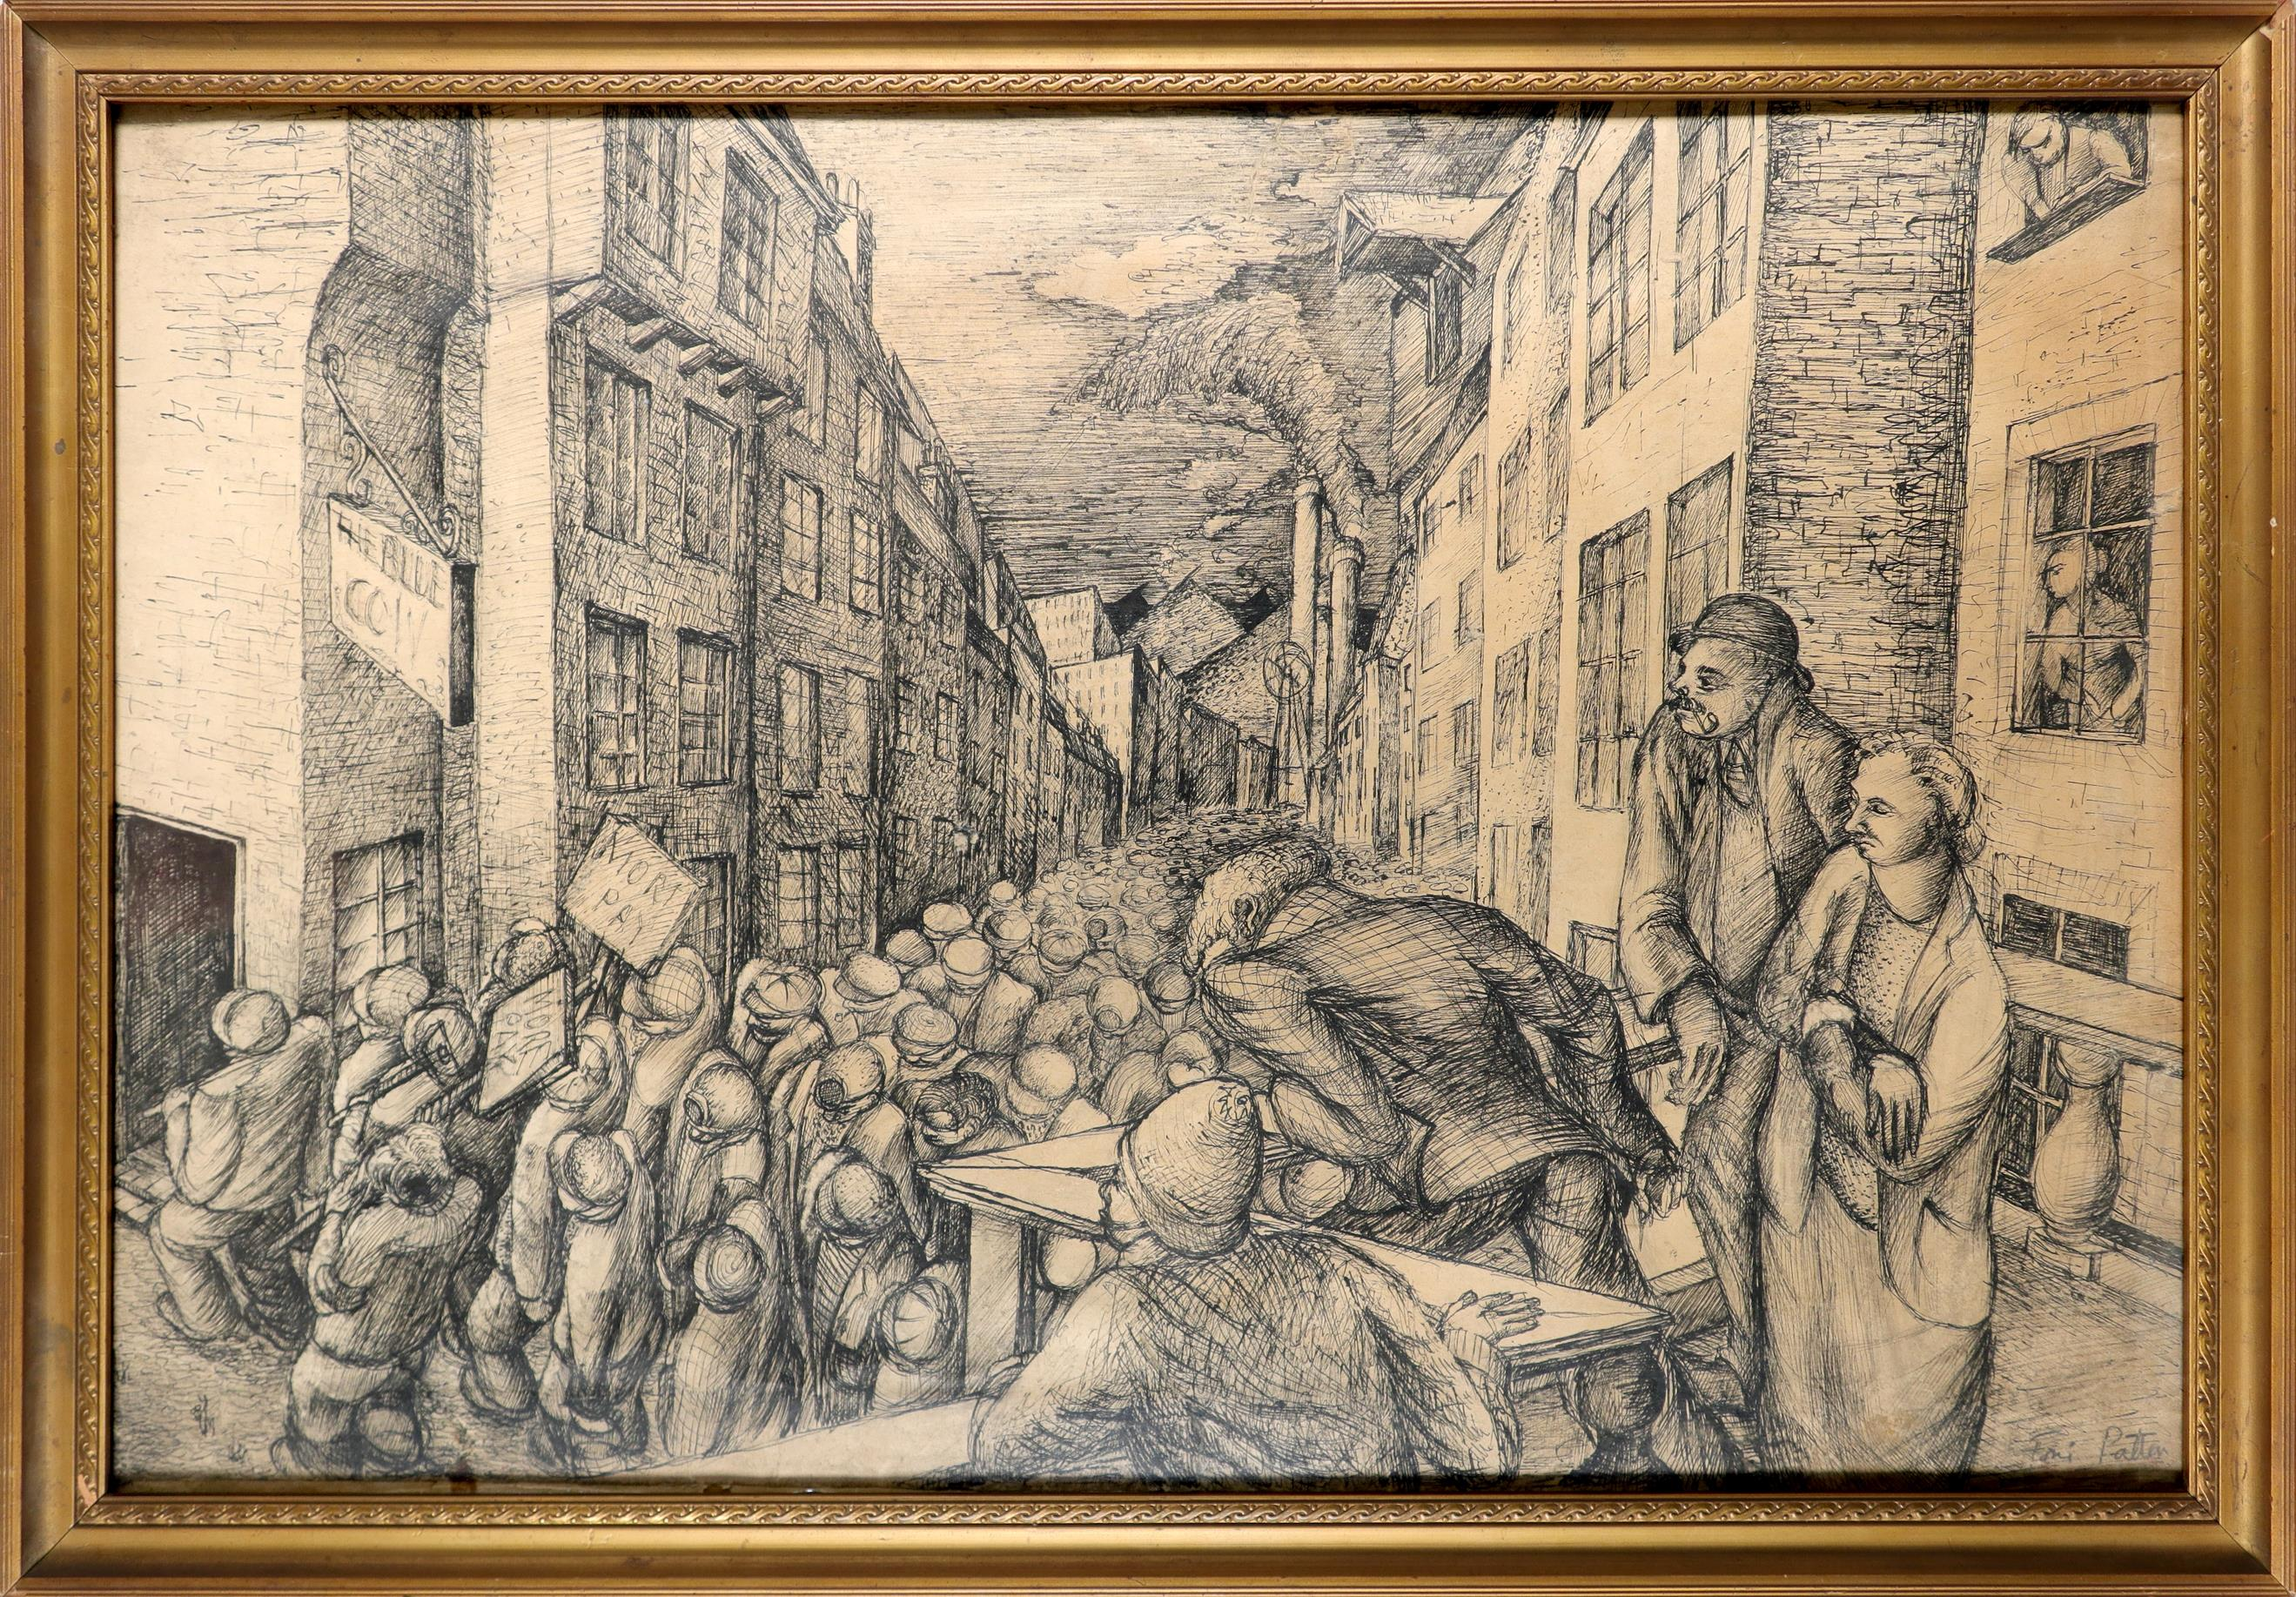 ‡Toni Patten (20th Century) Striking workers Signed Toni Patten (lower right) Pen 34.4 x 54.7cm - Image 2 of 3